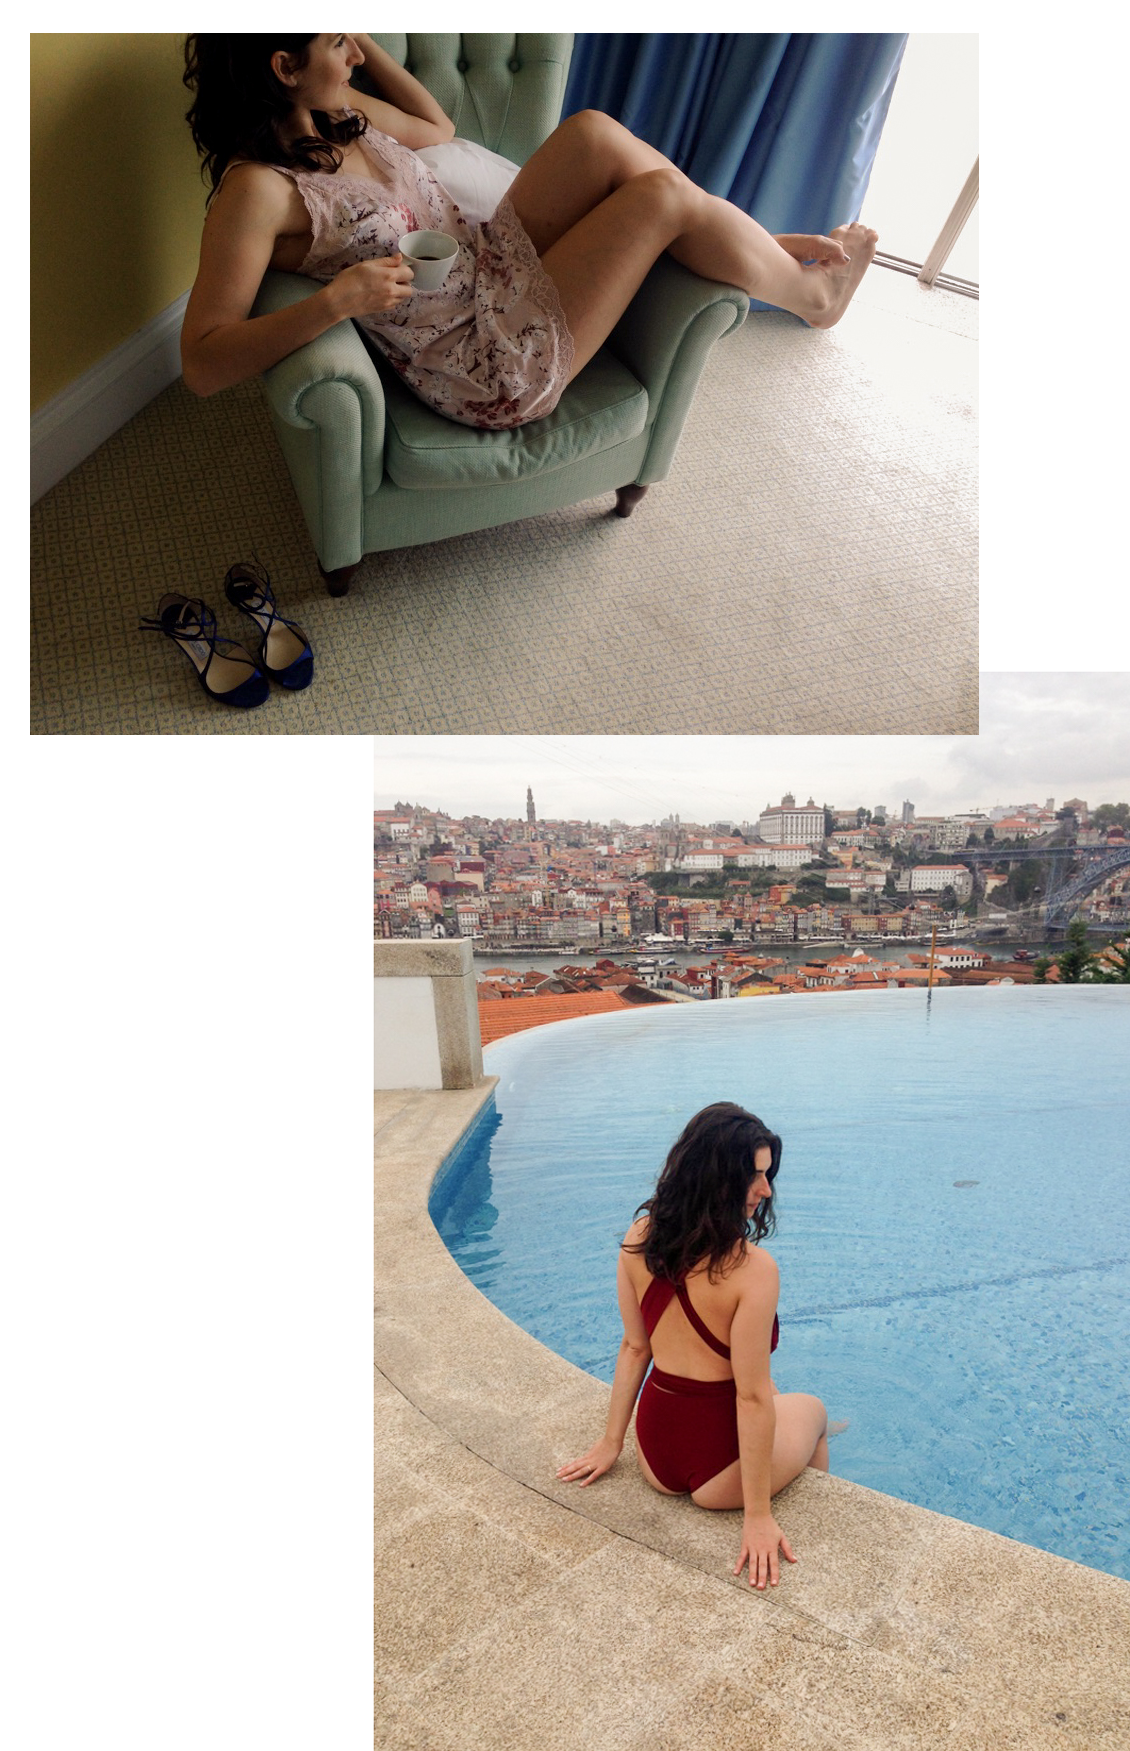 Yeatman Room and Exterior Pool